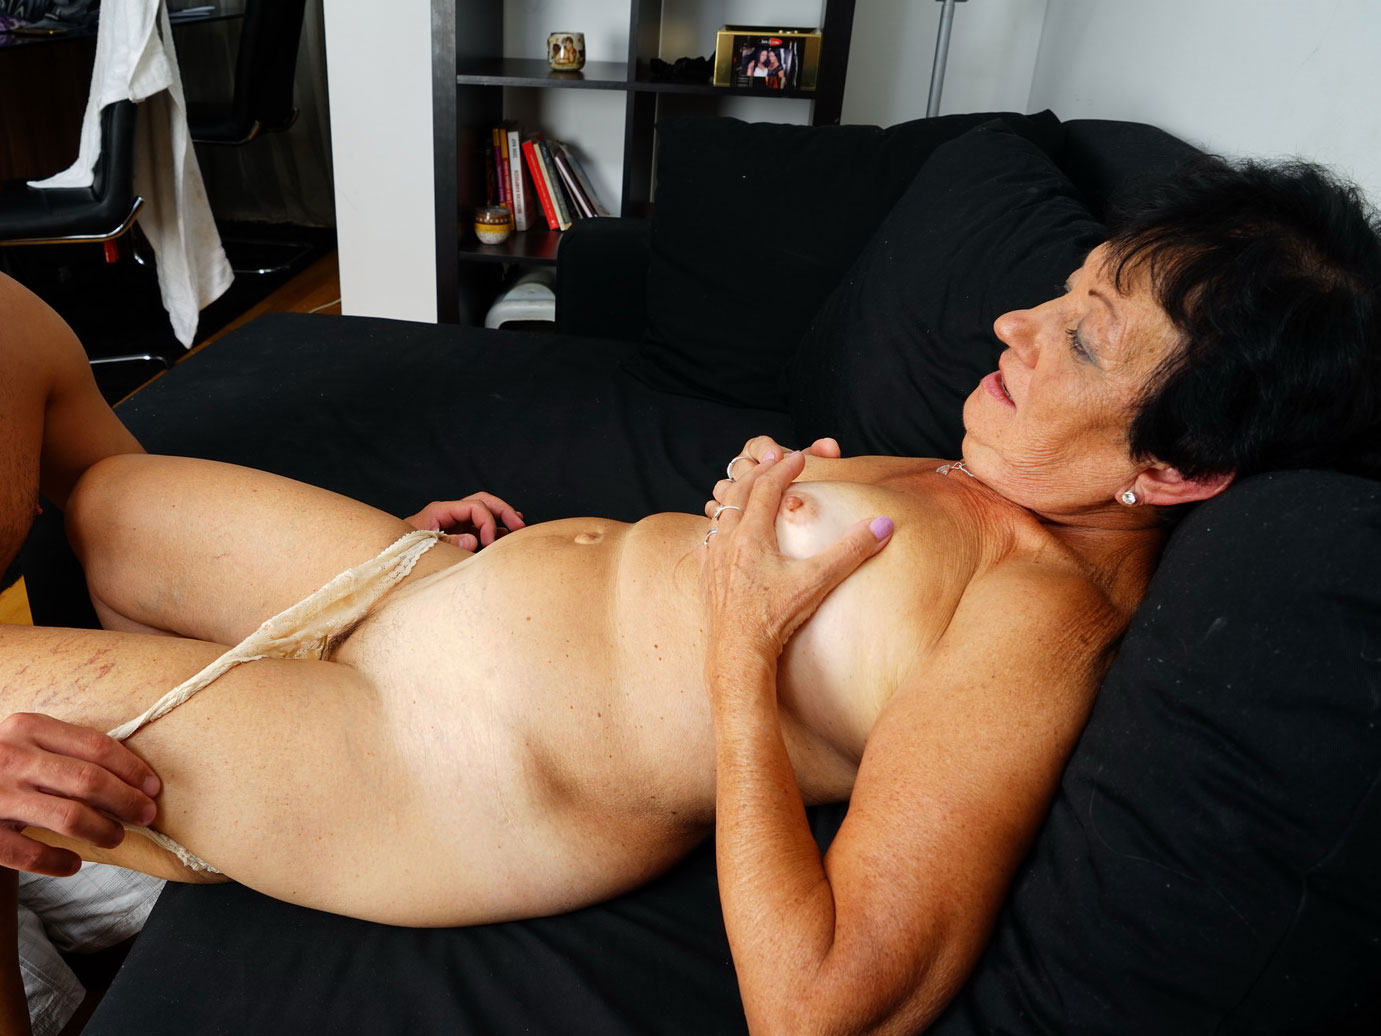 Amateur granny giving lame head and gets banged on GotPorn (5602451)